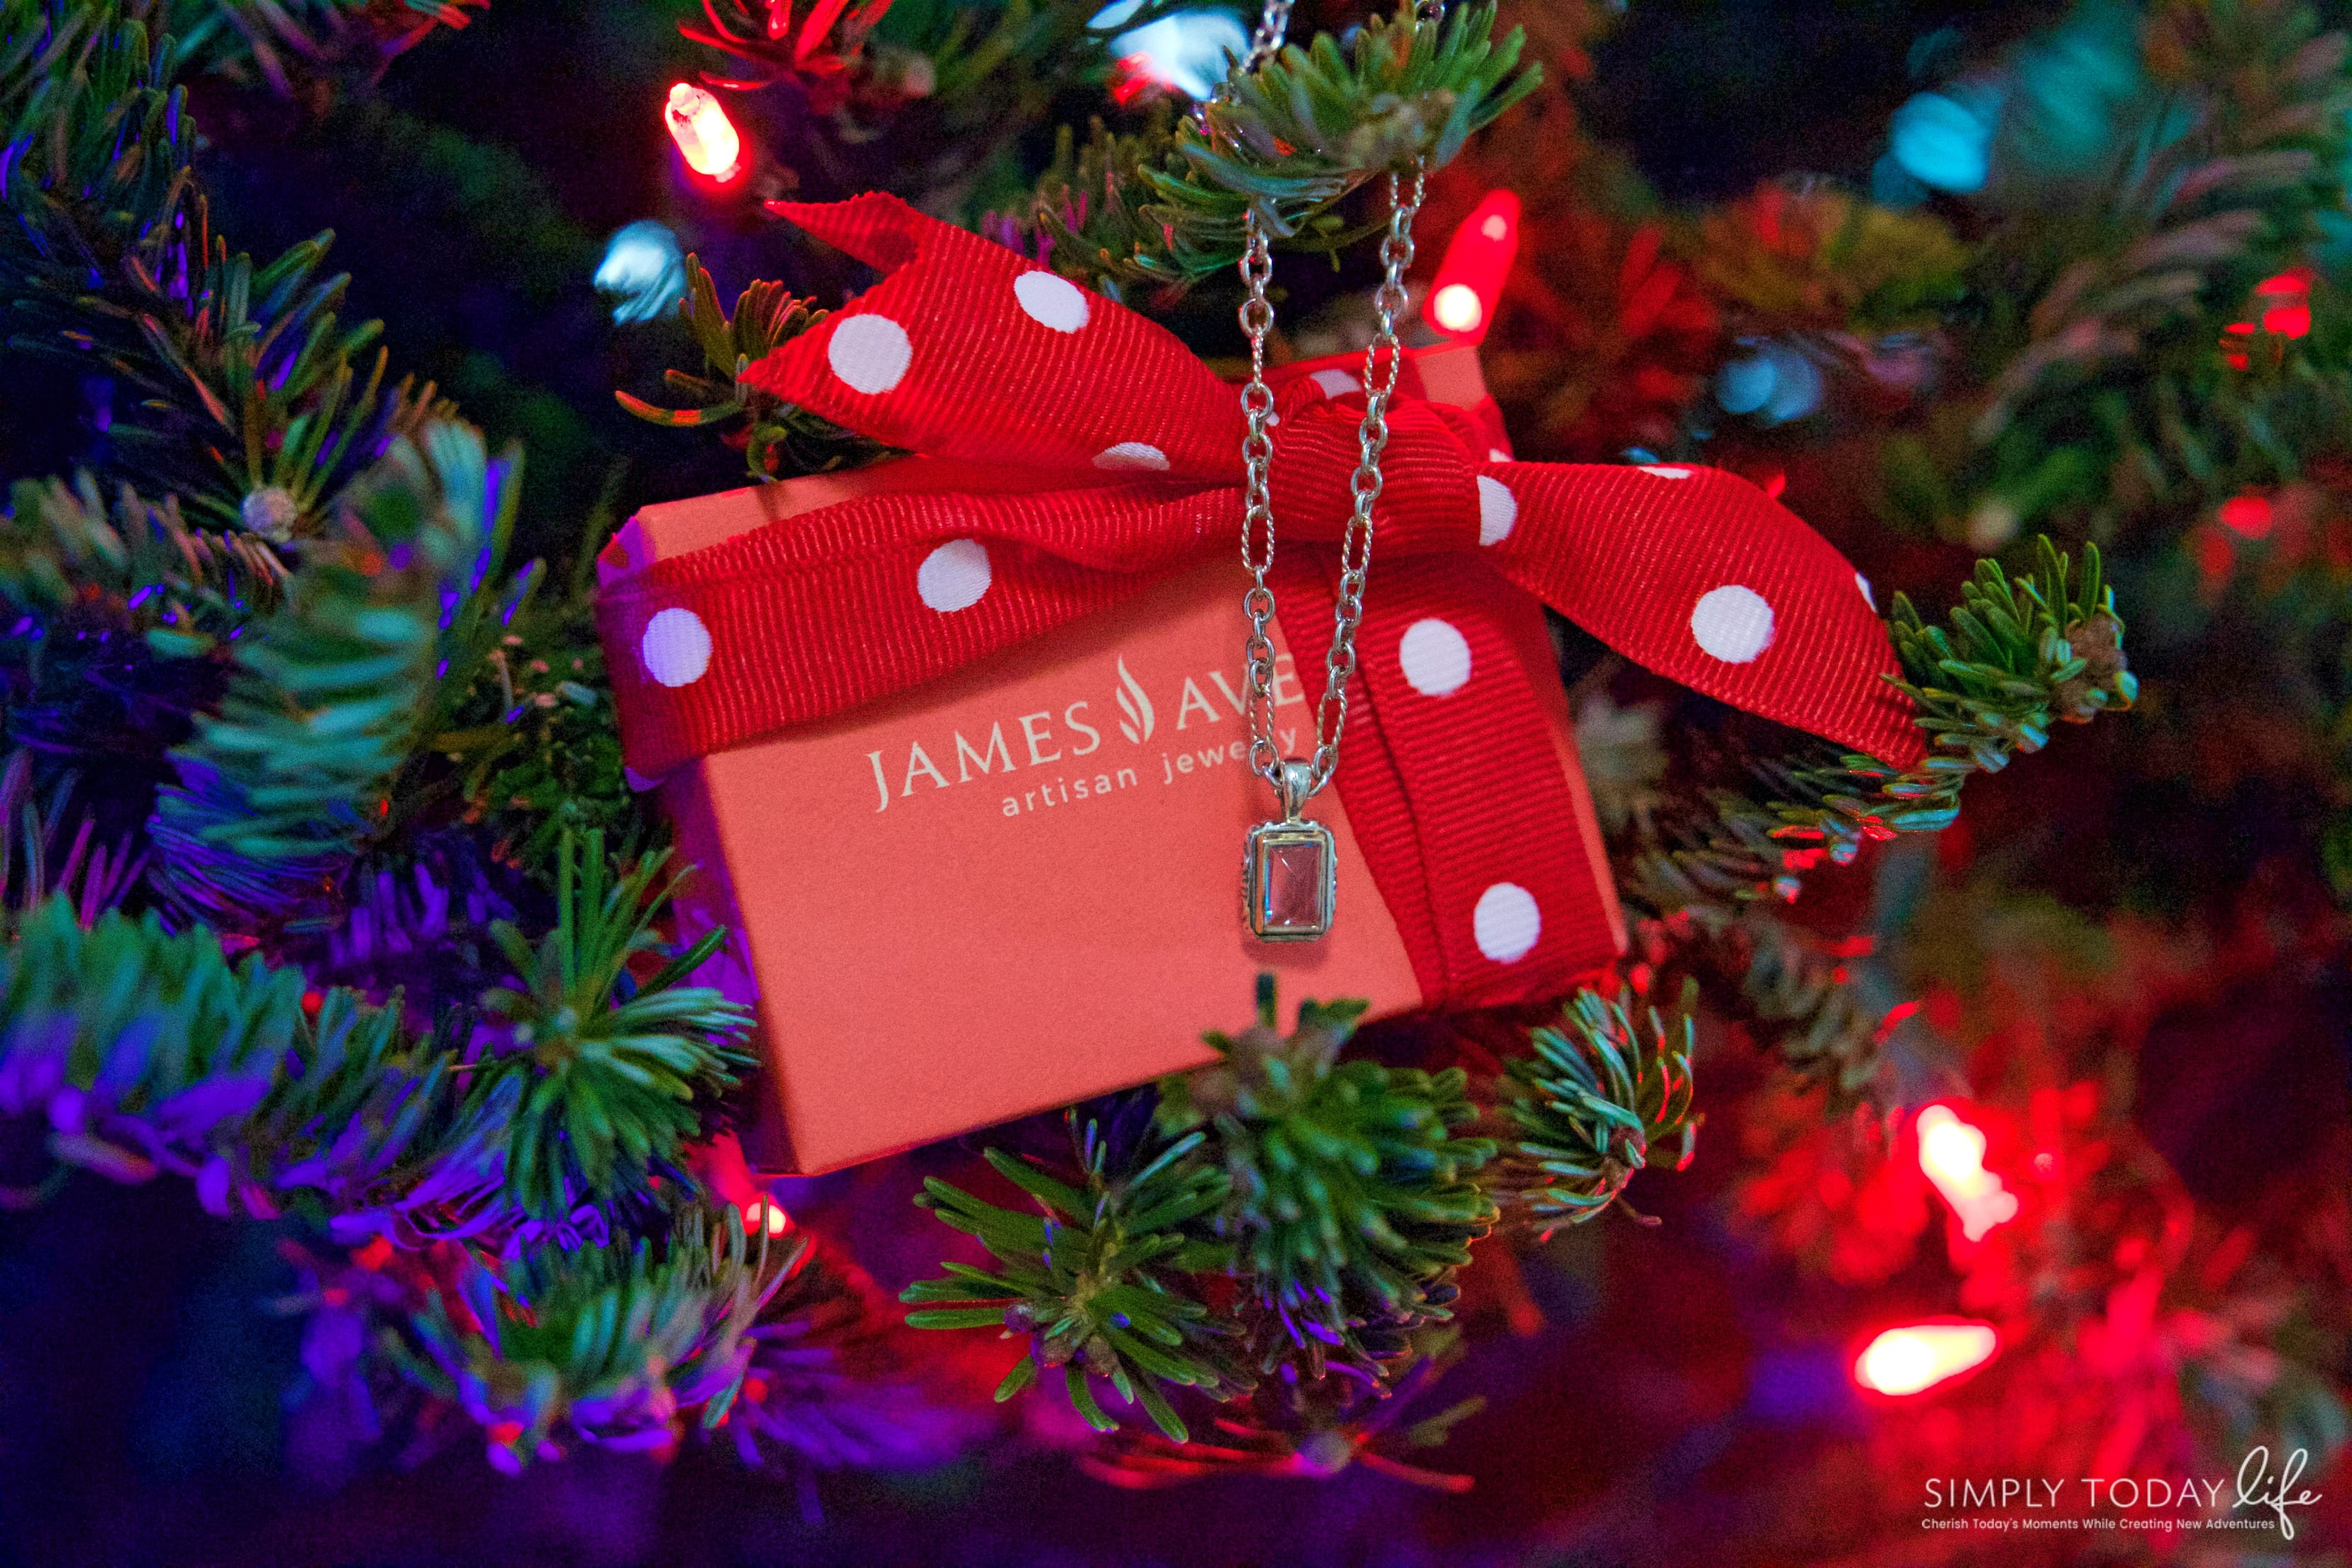 A Sentimental Holiday Gift For Mom With James Avery Artisan Jewelry - Christmas Present for Mom